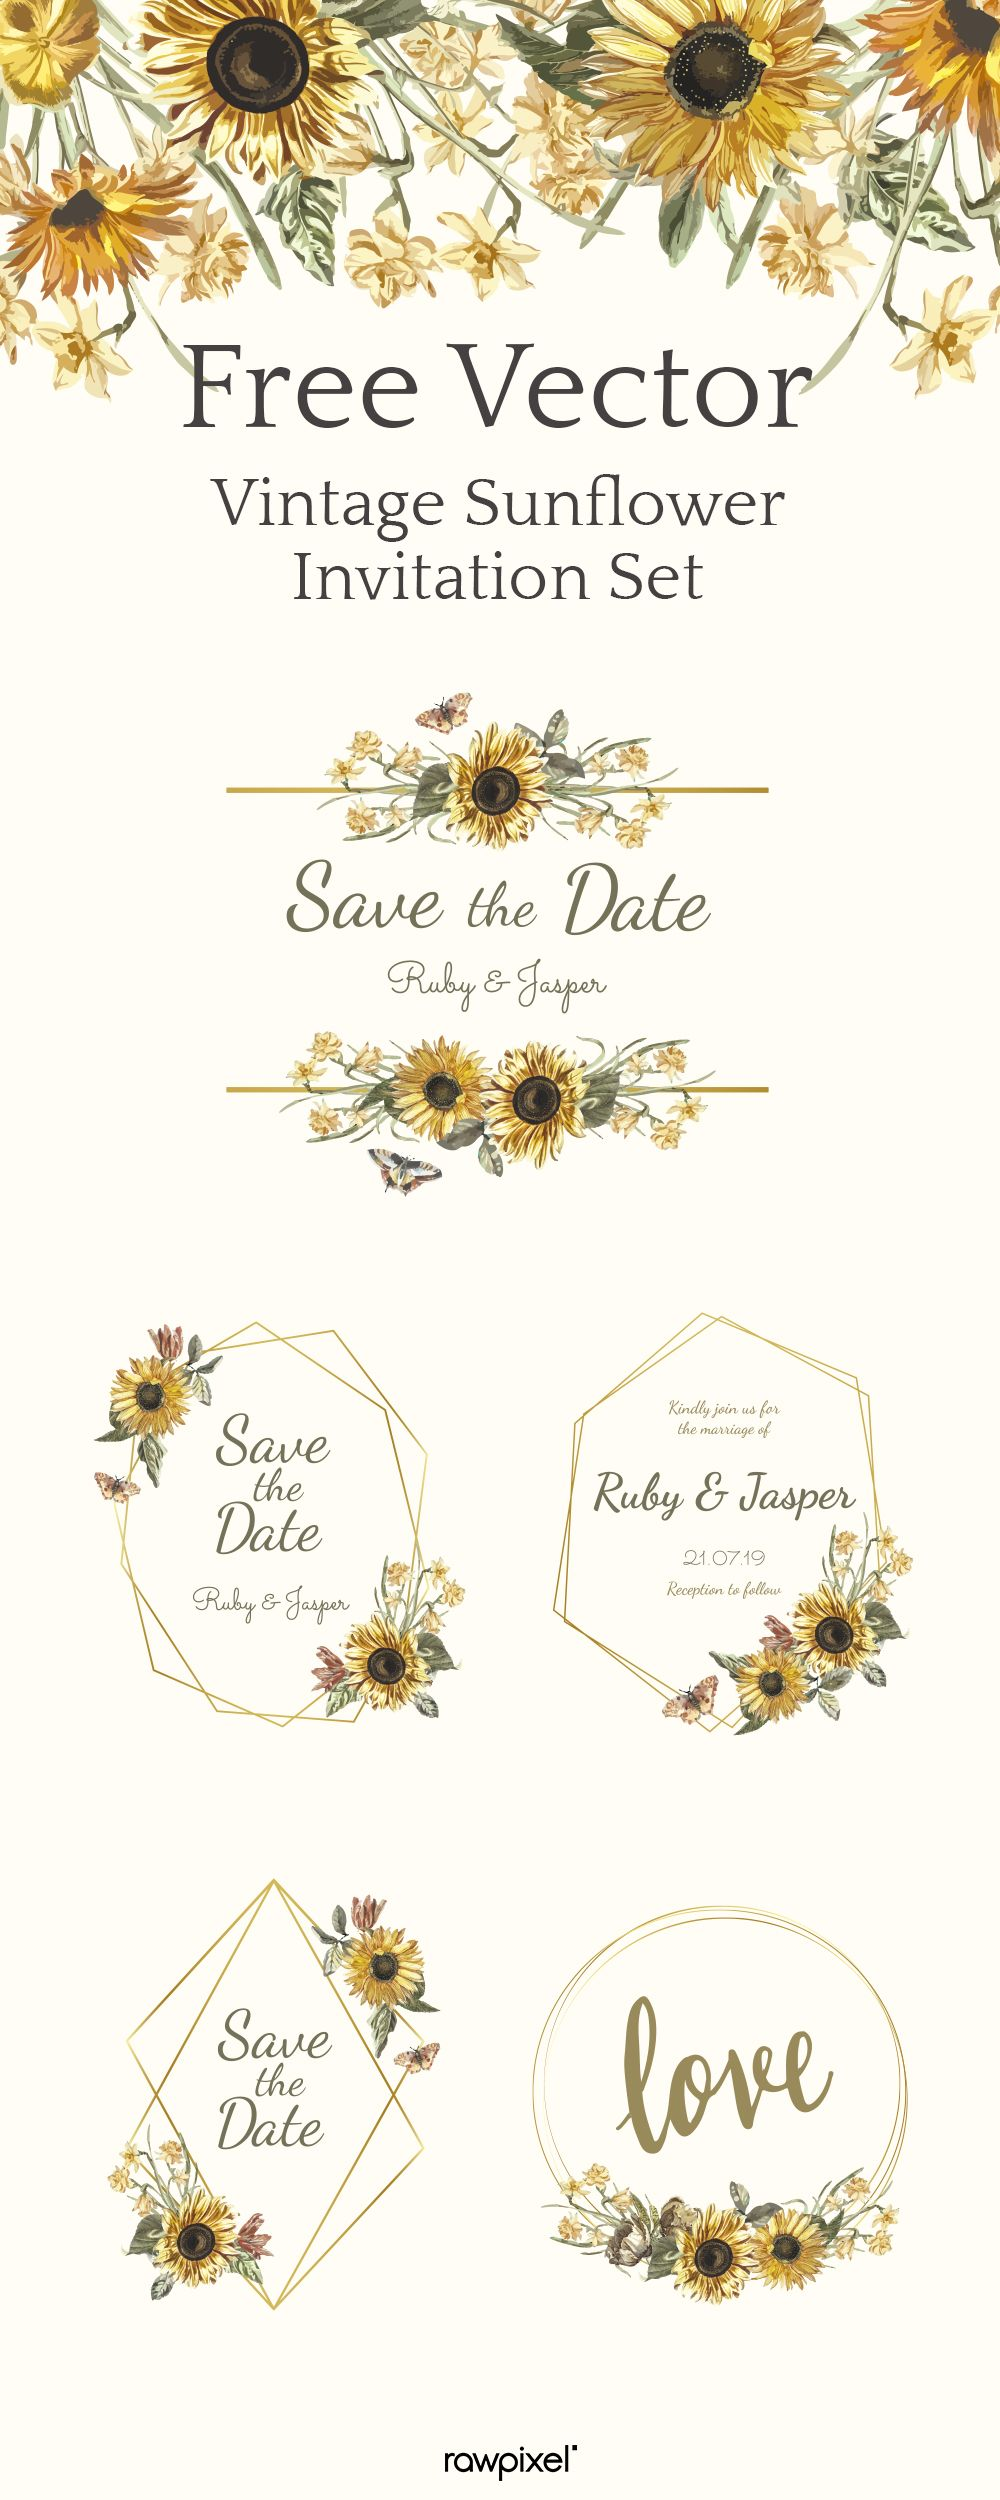 Download free Vintage Sunflower Invitation Vector Set at rawpixel